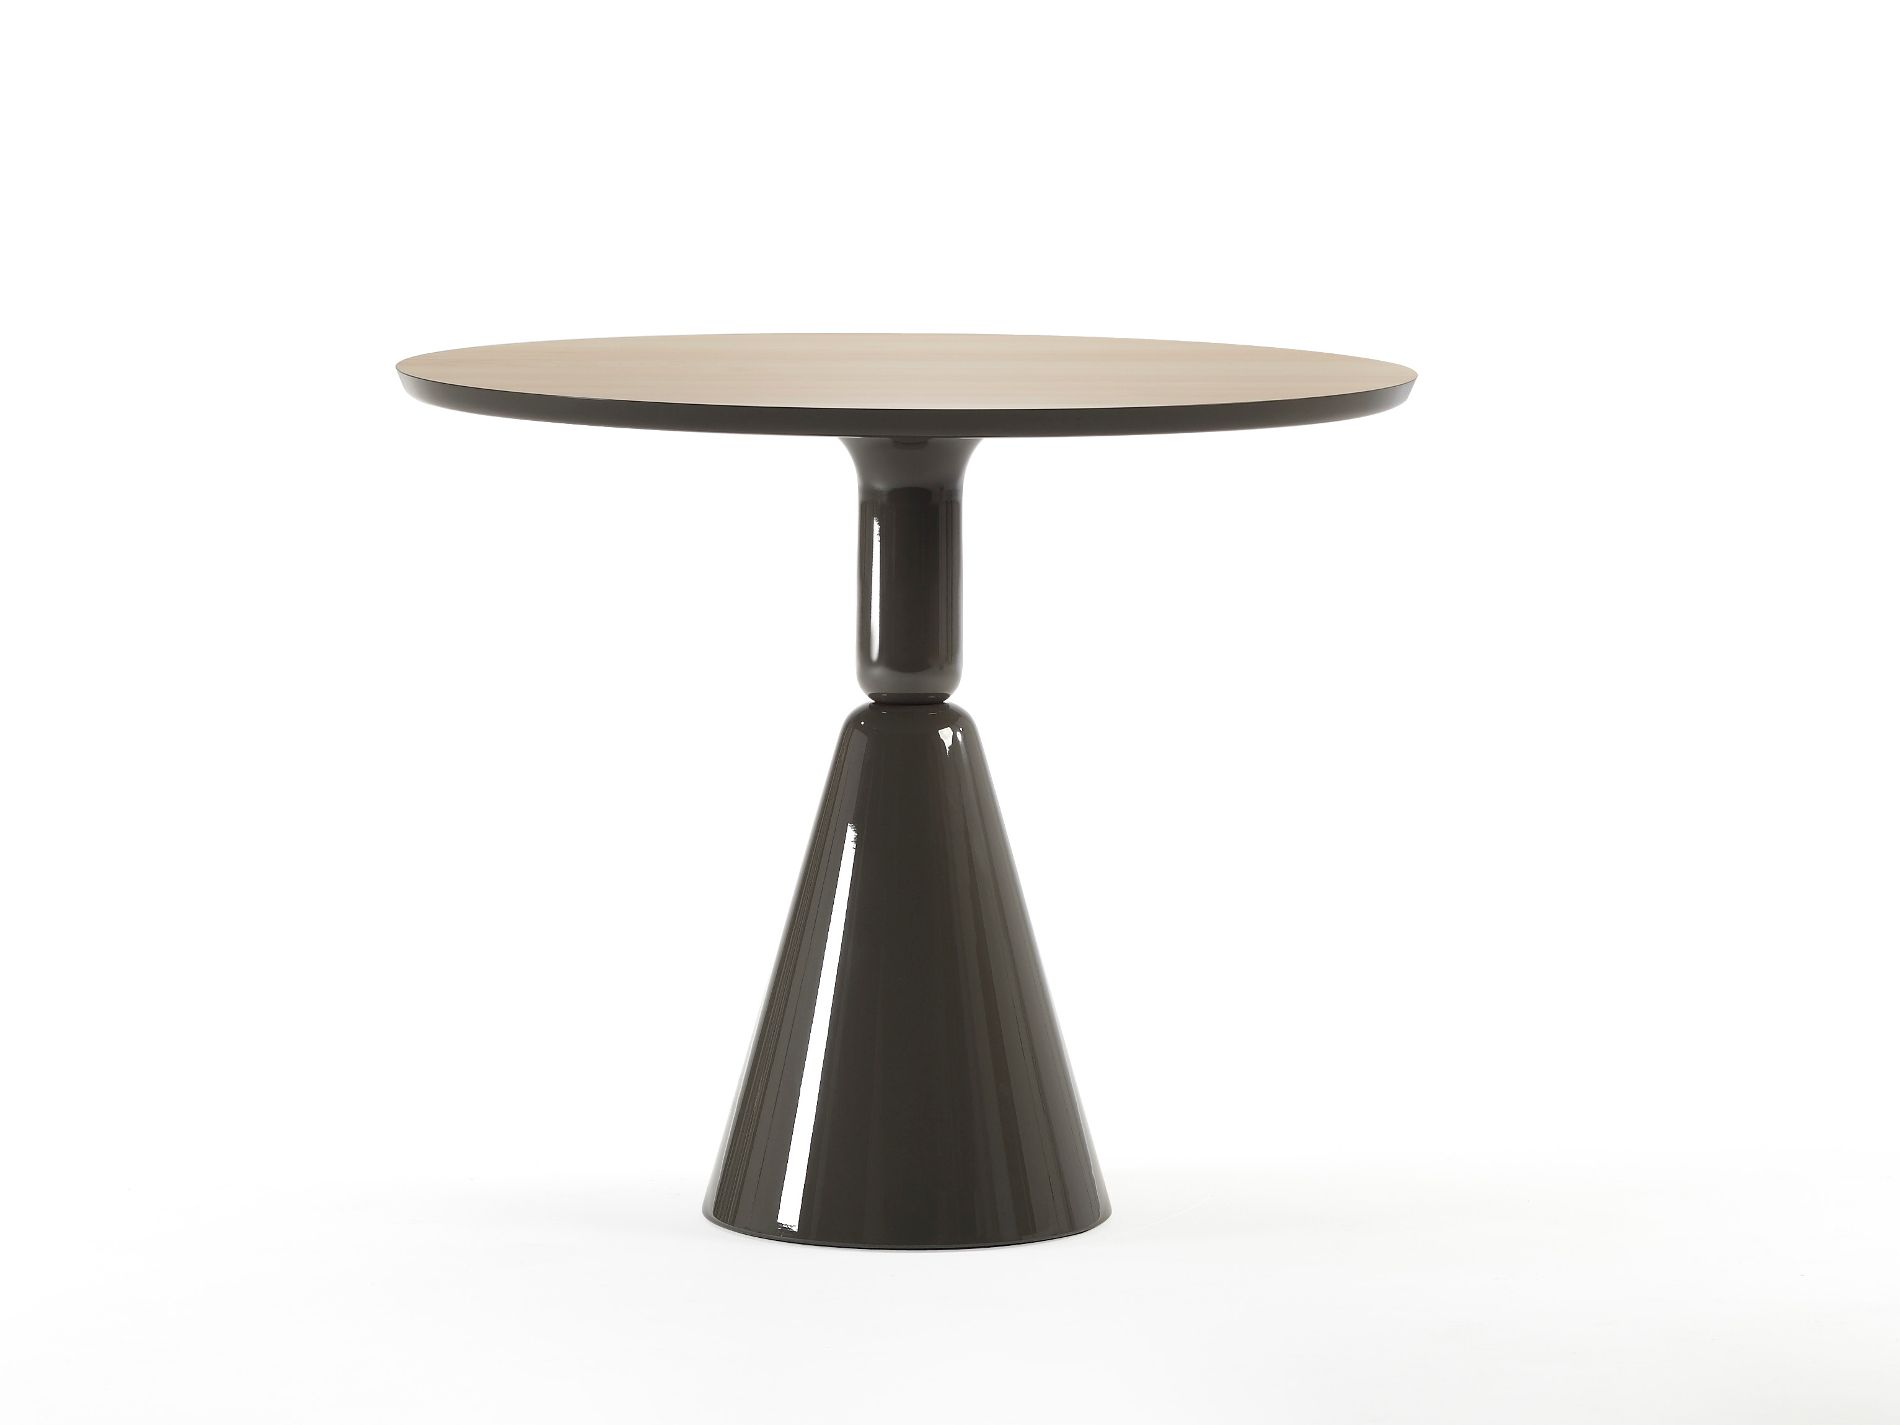 At The Table Or On The Table Pion Round Table Pion Collection By Sancal Furniture Dining Table Round Table Decor Side Table